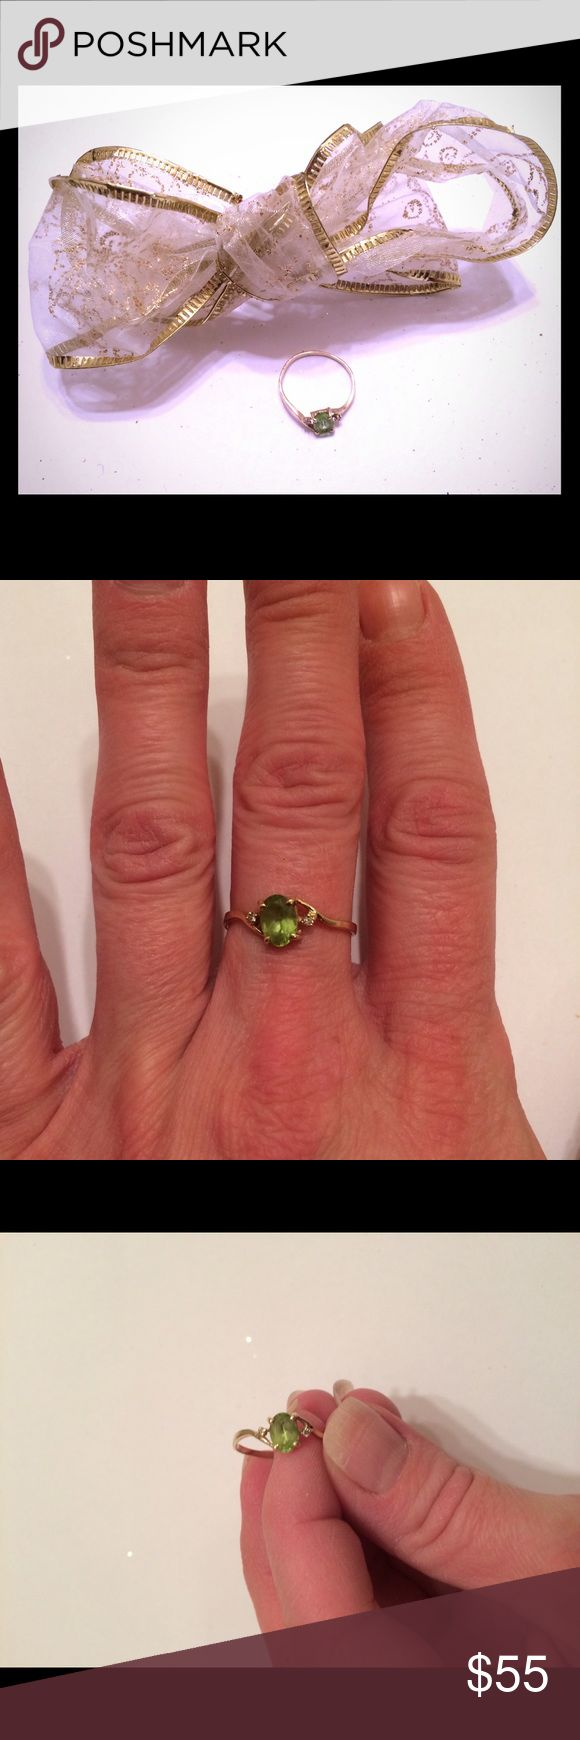 """Vintage gold peridot and diamond ring Vintage 1990's gold peridot and diamond ring size 7. Marking on inner band shows its gold, but the number has been worn off...so it may be 10k or it may be 14k. I'm not sure. If you look closely it says """"KF"""". It's a beautiful ring with a large peridot in the middle and one diamond on each side. It's a little bent from wearing it a few times but still in great condition! Vintage Jewelry Rings"""